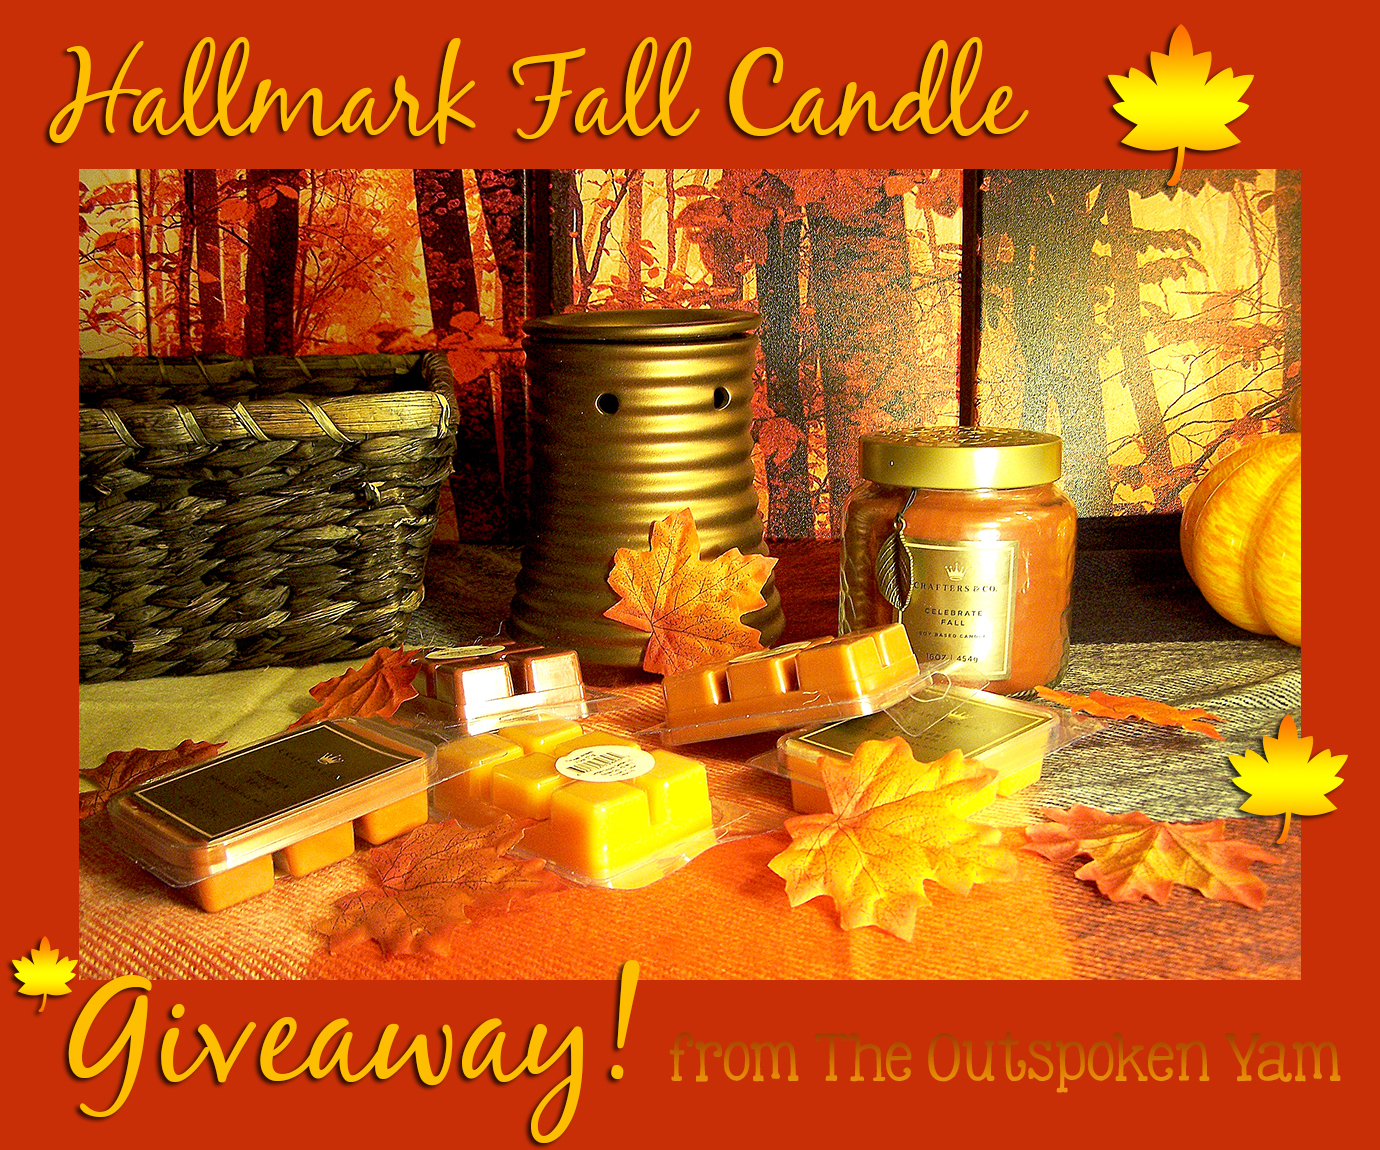 Hallmark Crafters & Co Fall Candle Giveaway giveaways sweepstakes autumn leaves candles wax melts warmer orange yellow basket gift presnt best candles enter to win winning contest gold scented pumpkin spice woven foliage collectible home decor decorating decorations